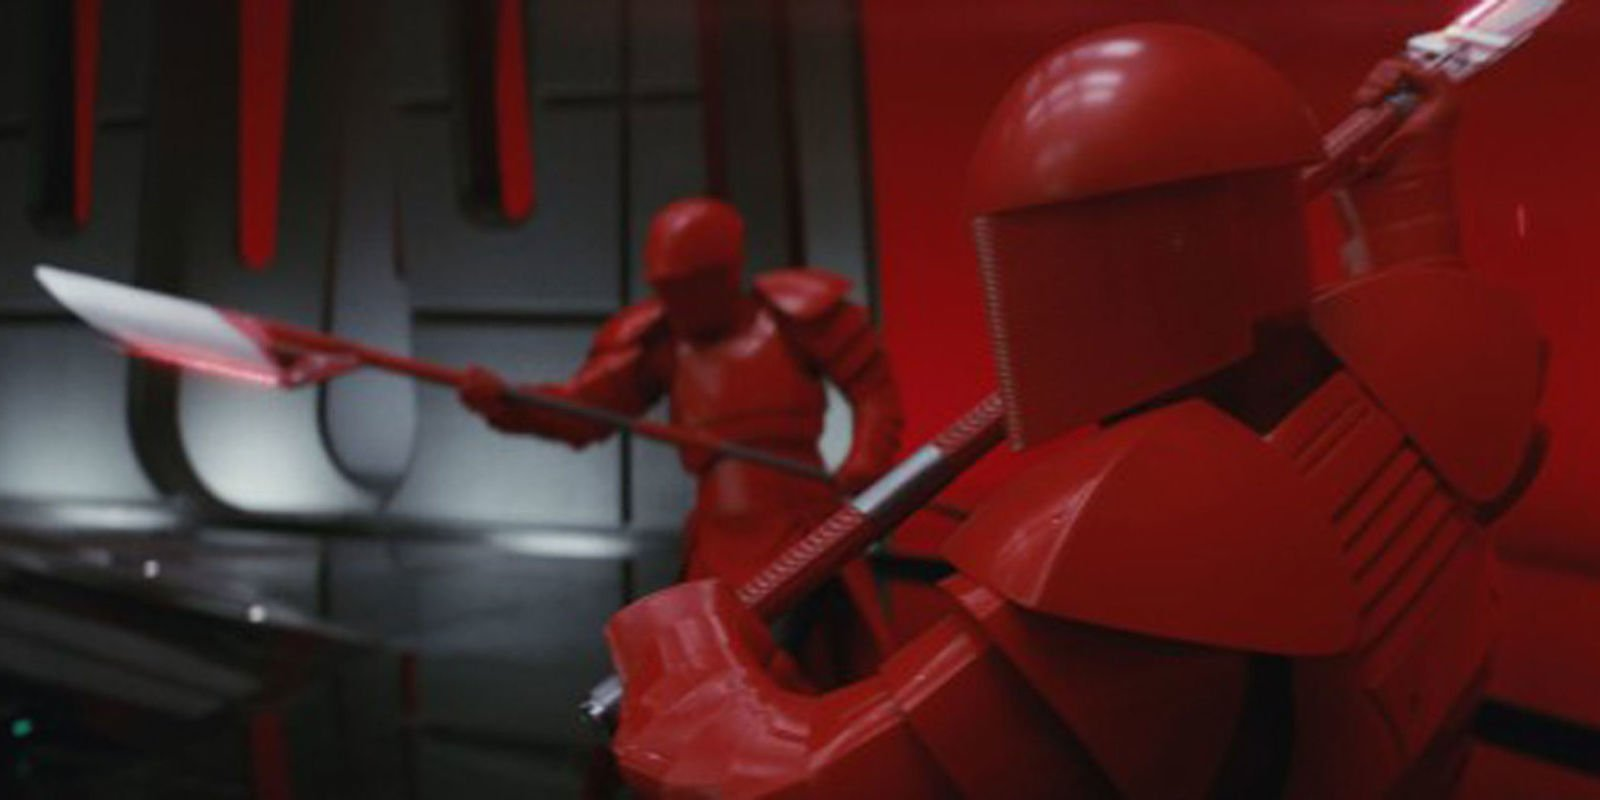 These Star Wars: The Last Jedi spoofs are hilarious